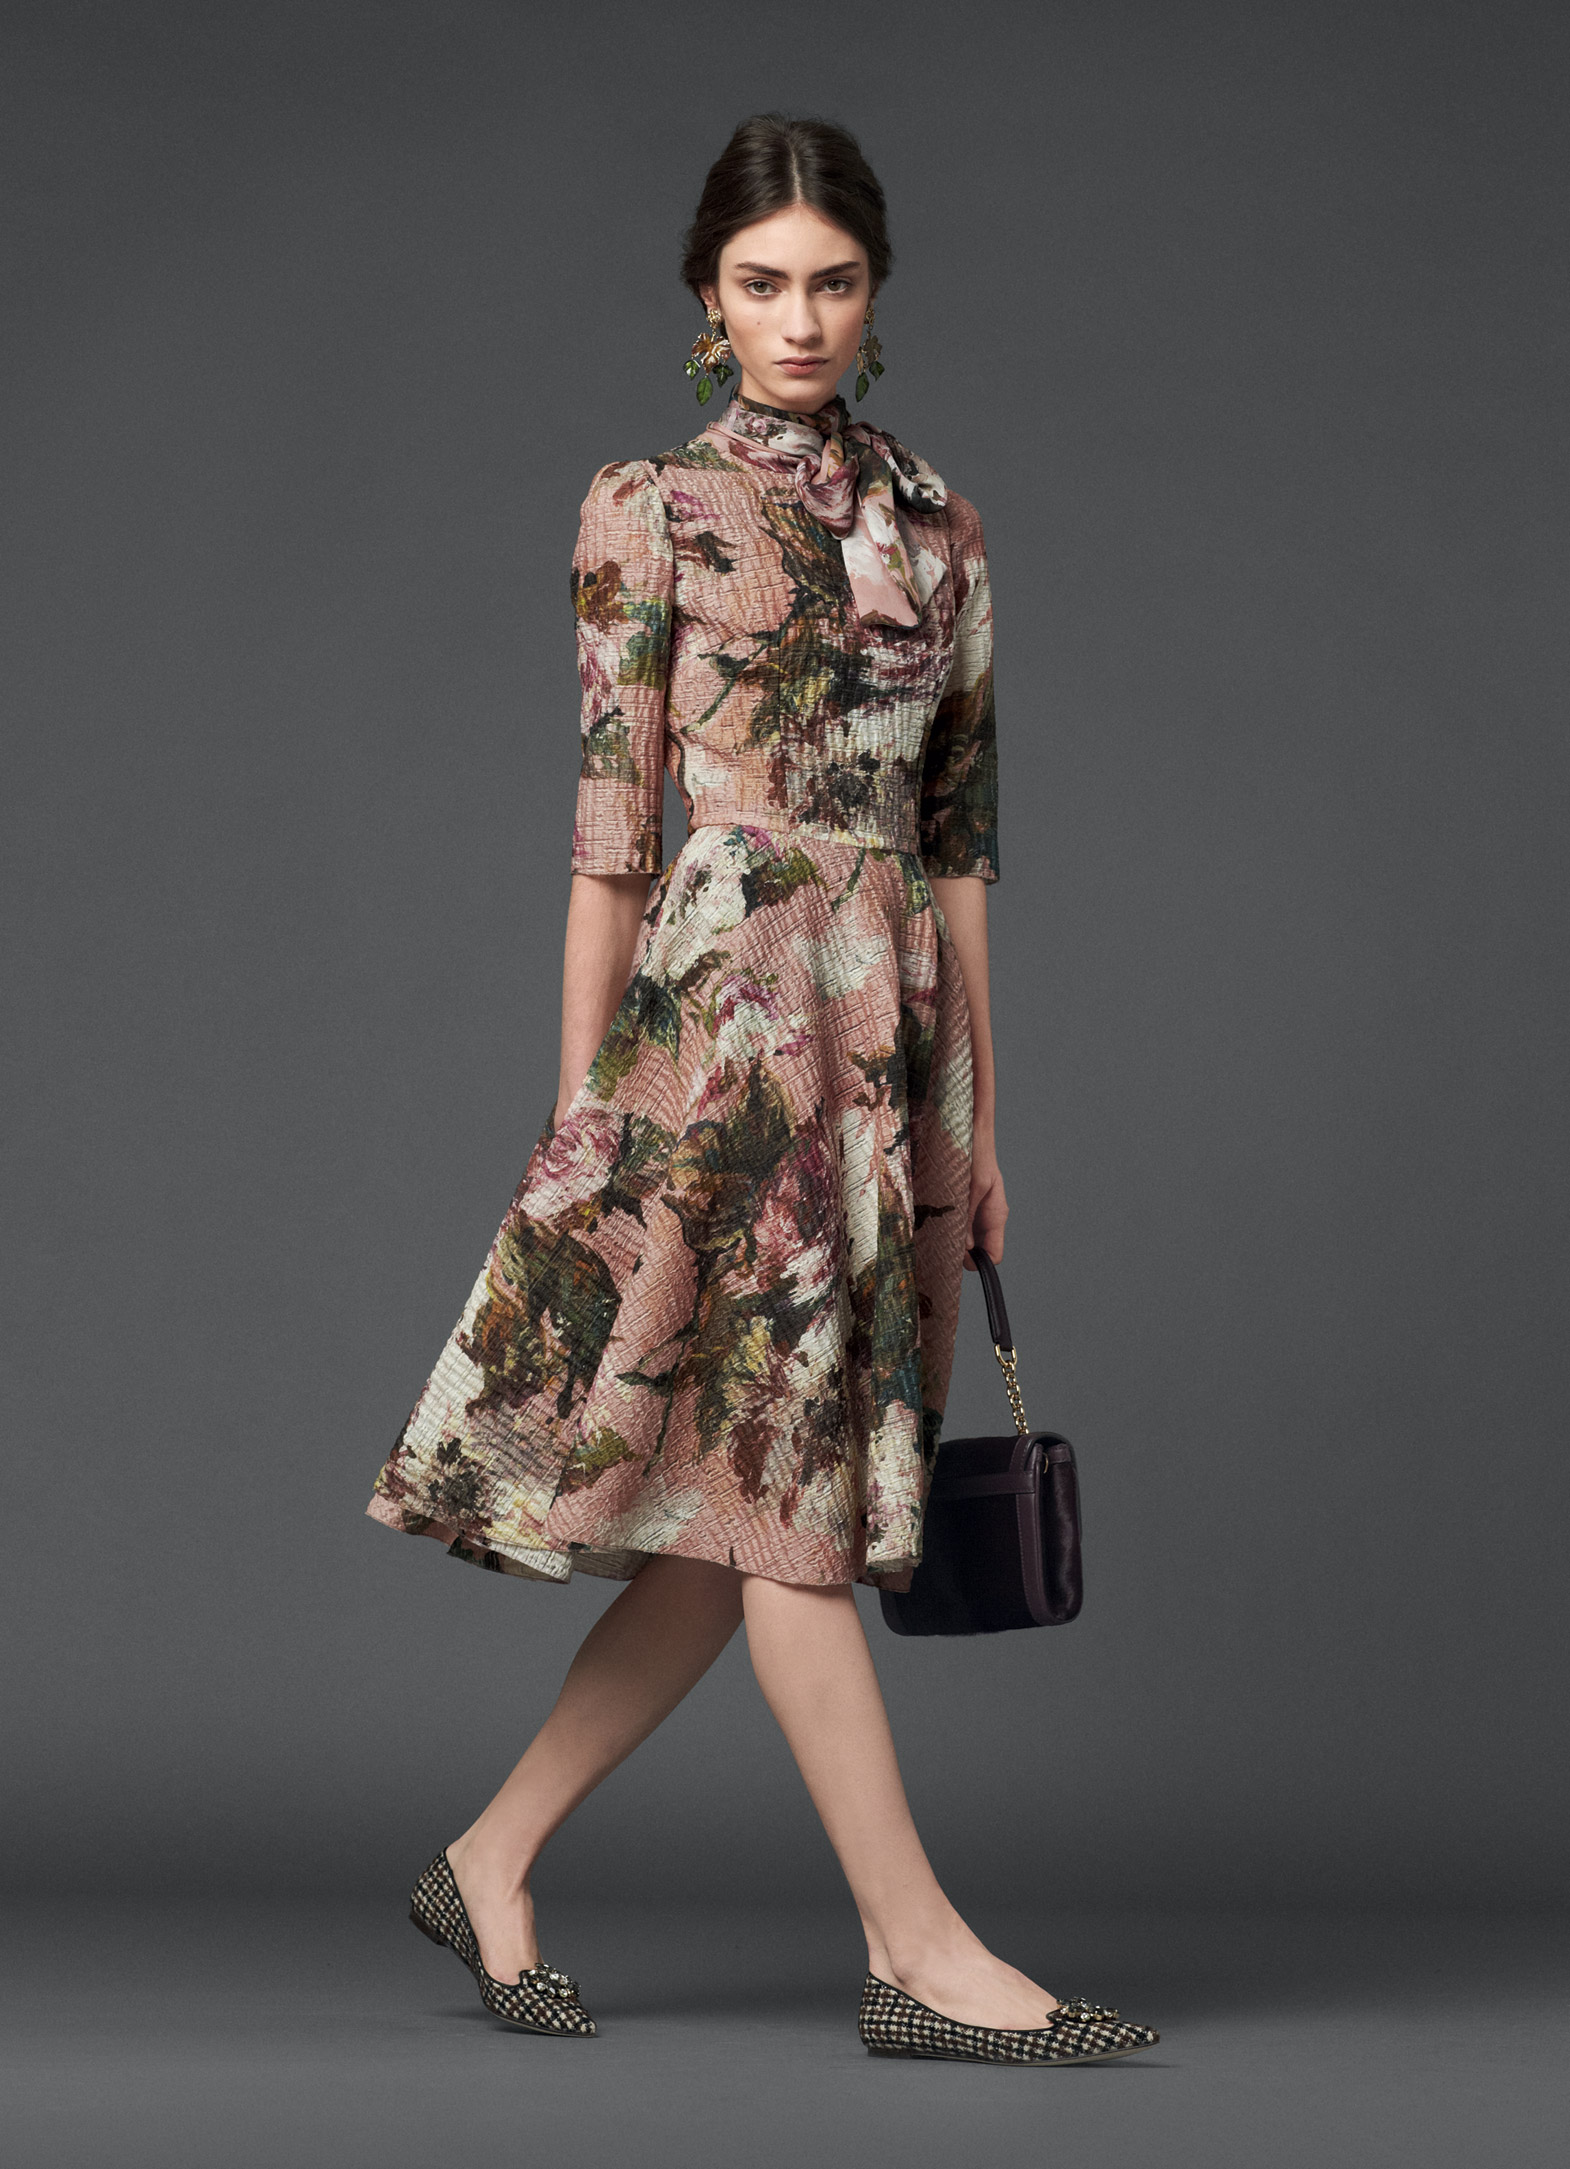 dolce-and-gabbana-fw-2014-women-collection-22